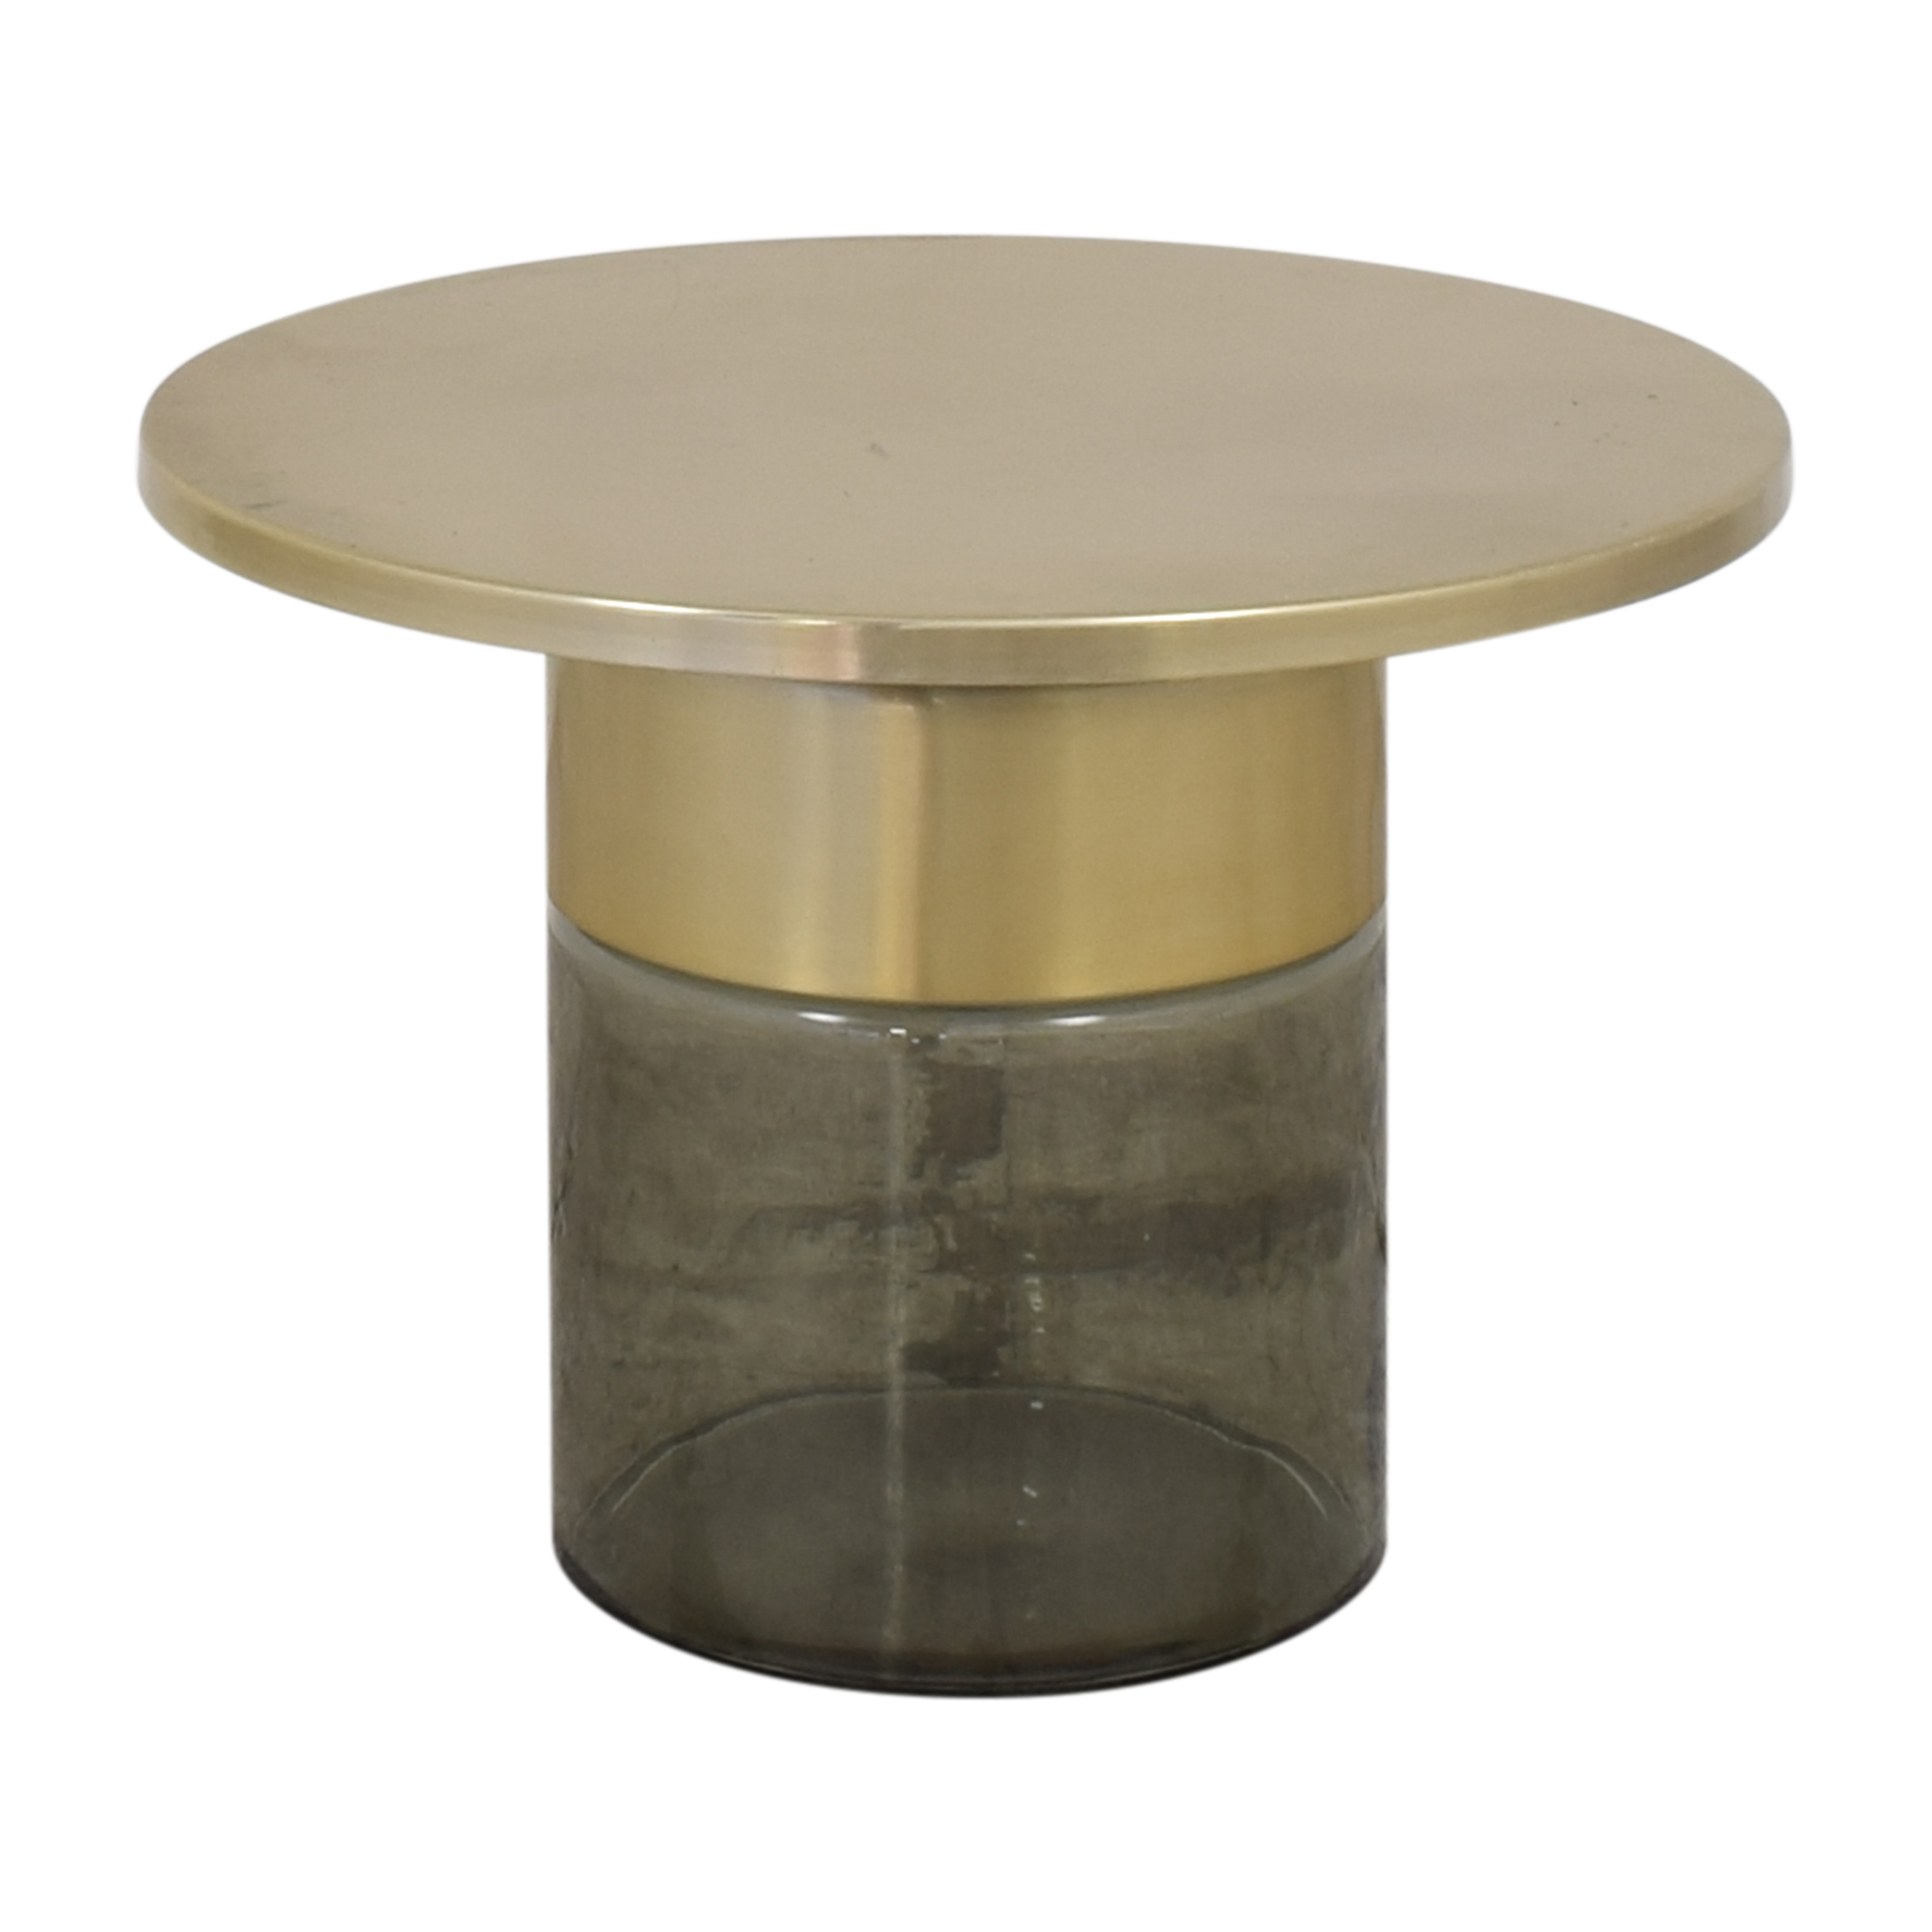 West Elm West Elm Marlo Side Table price